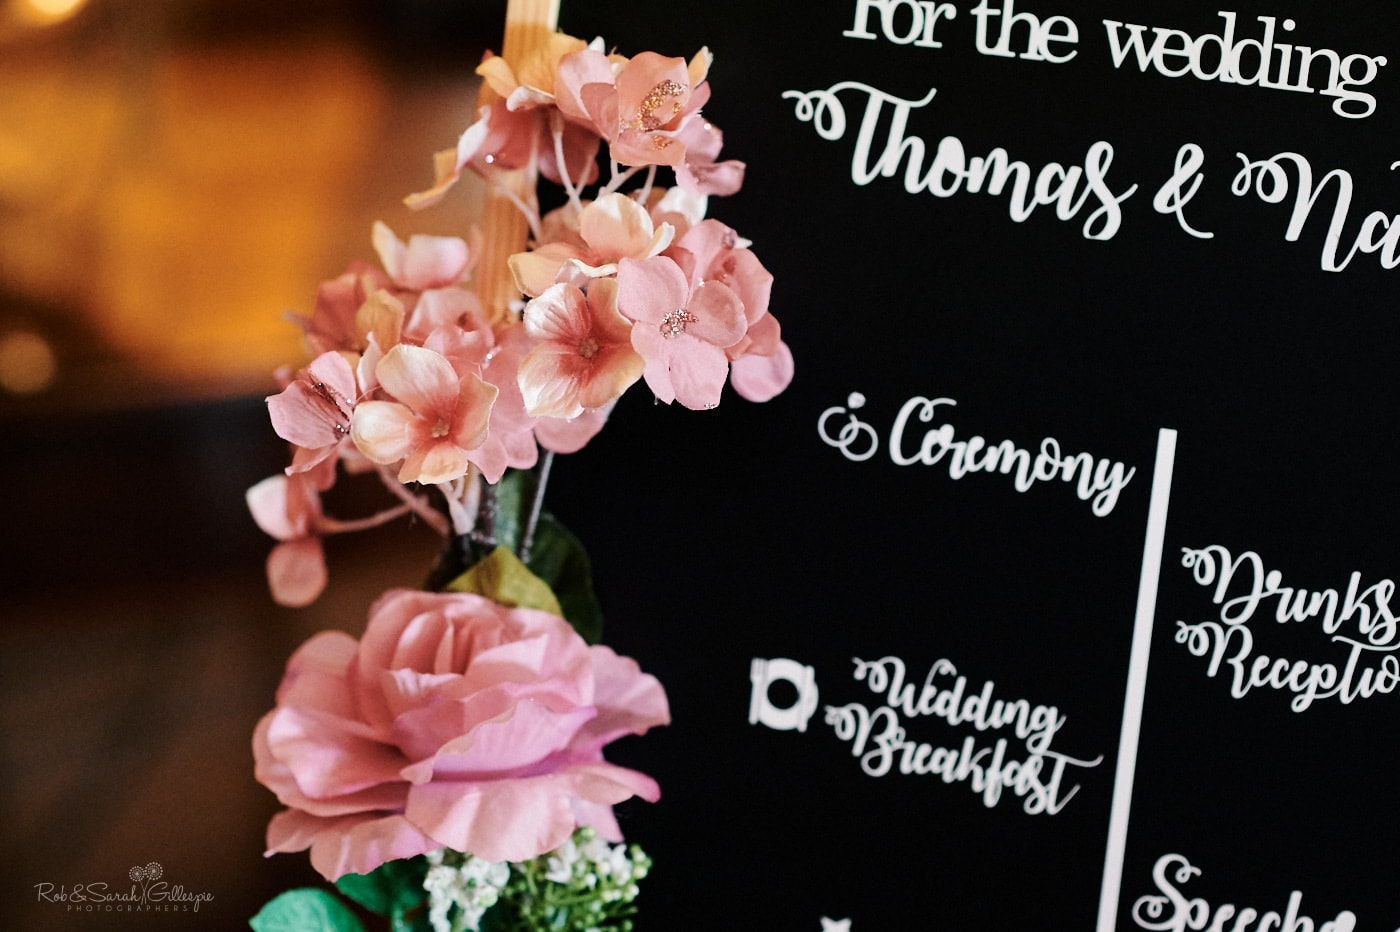 Detail of flowers on order of service board